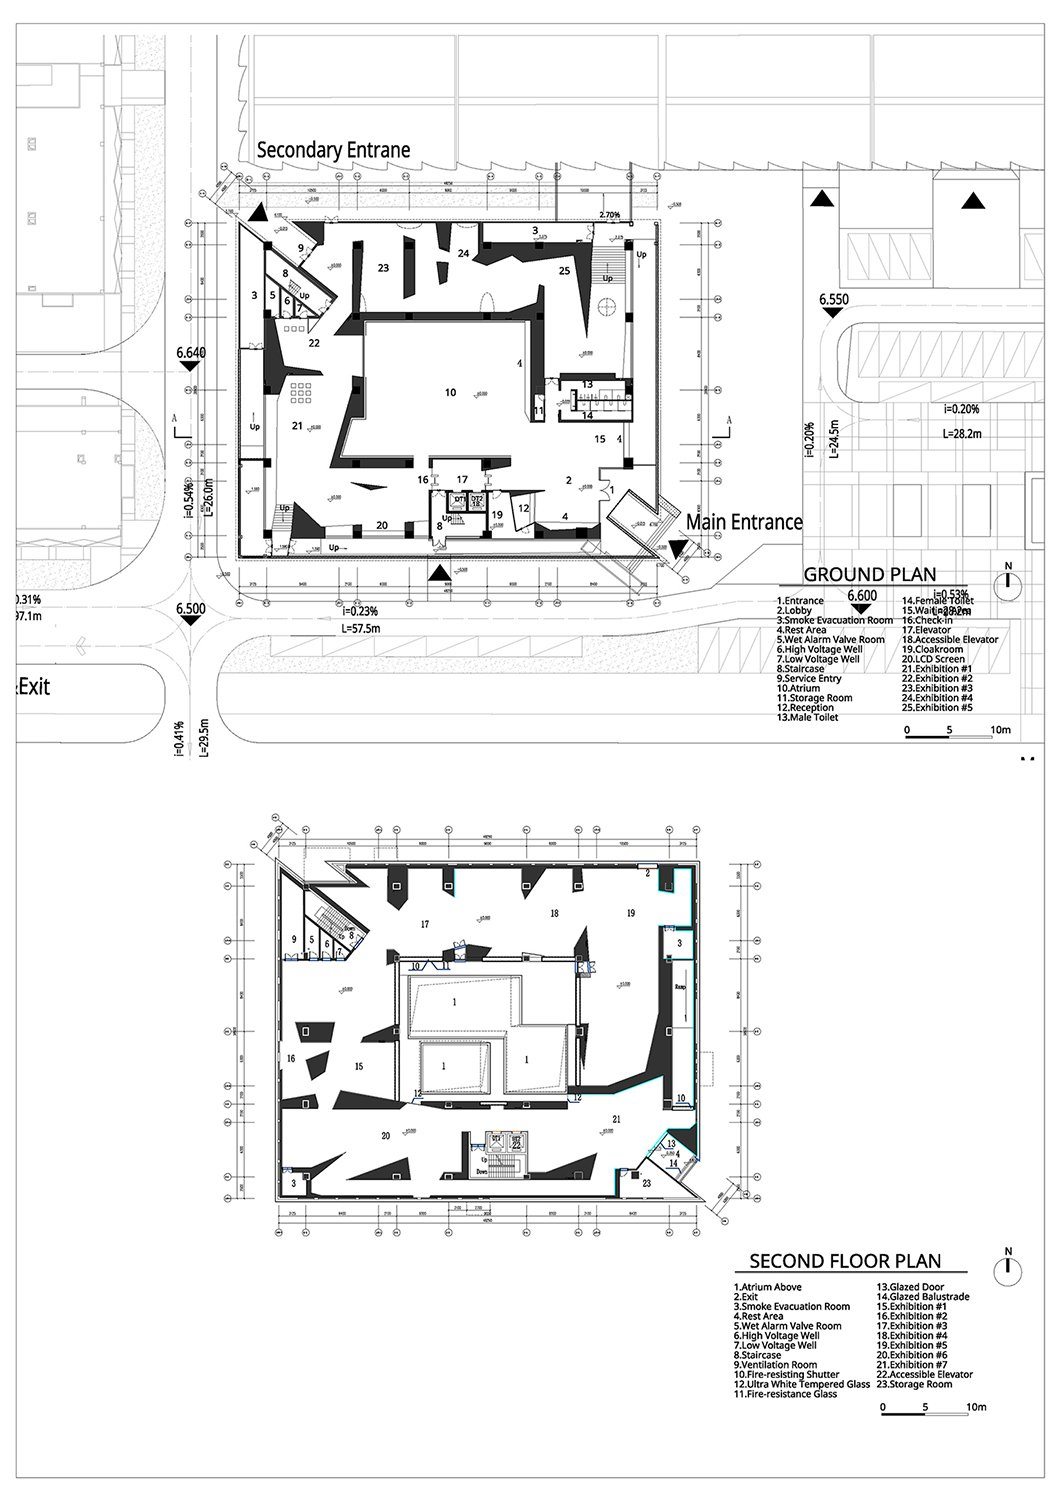 Ground Plan and Second Floor Plan Atelier Alter Architects}